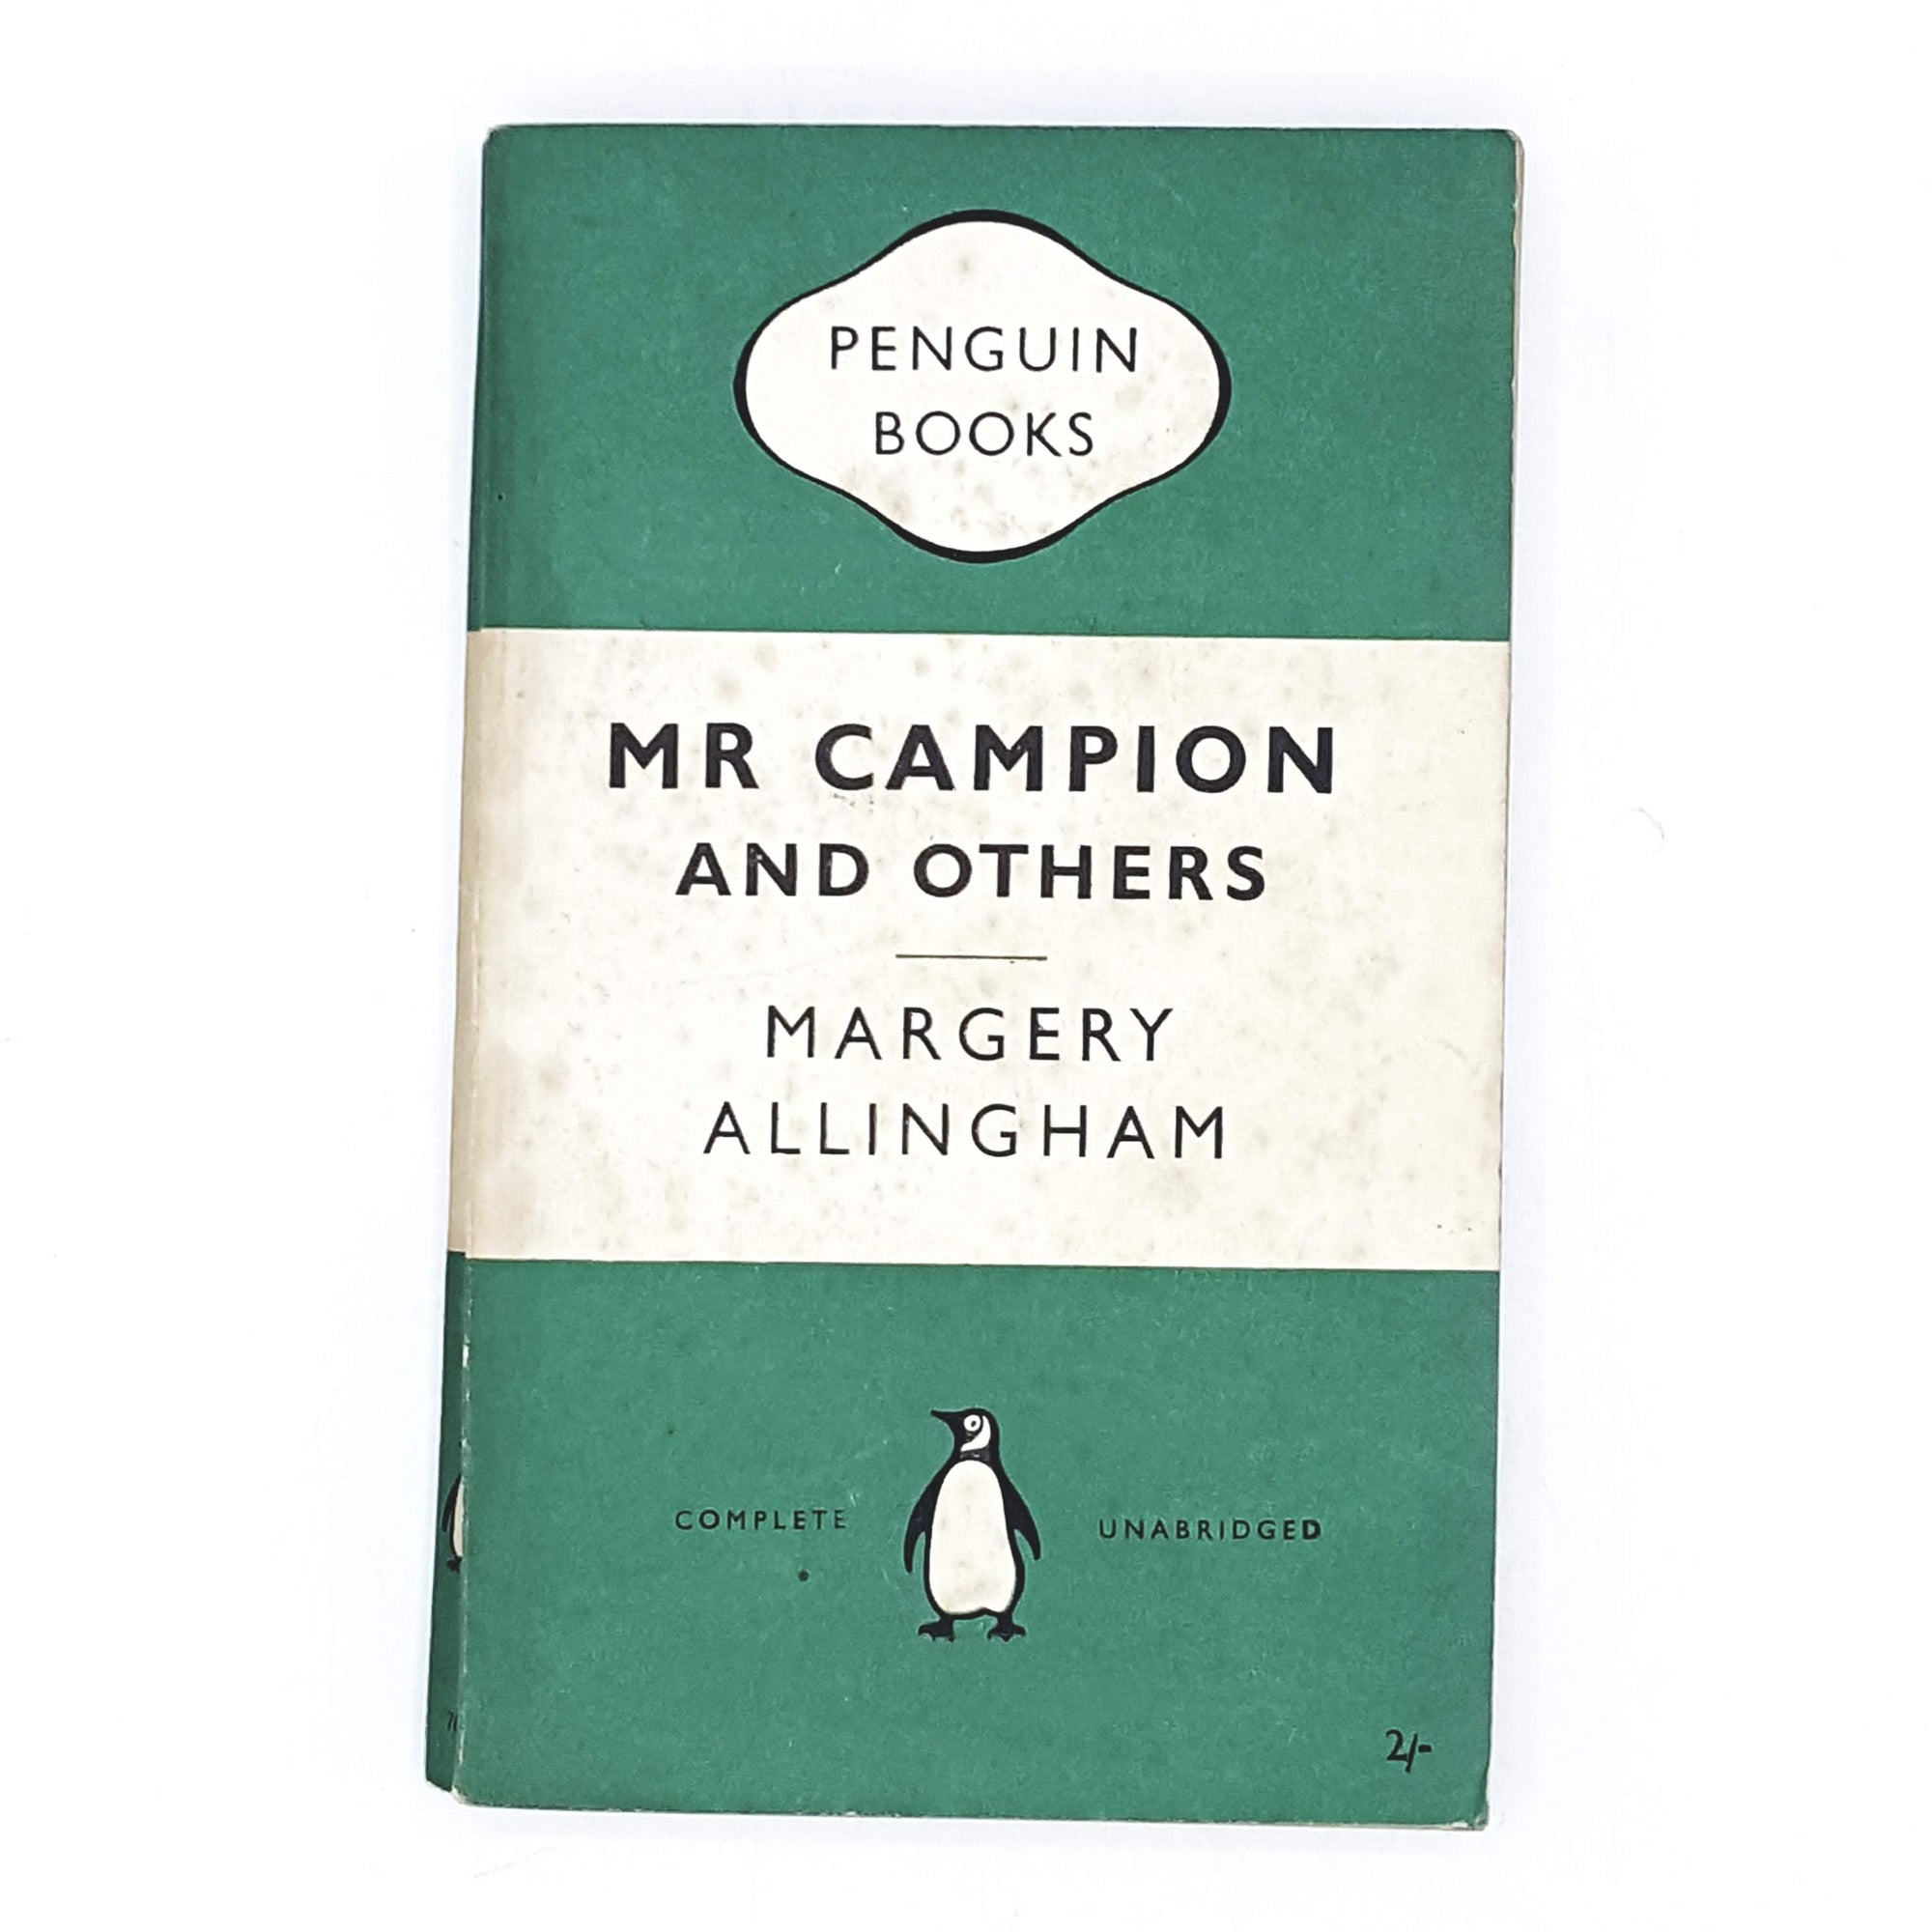 Mr Campion and Others by Margery Allingham 1954